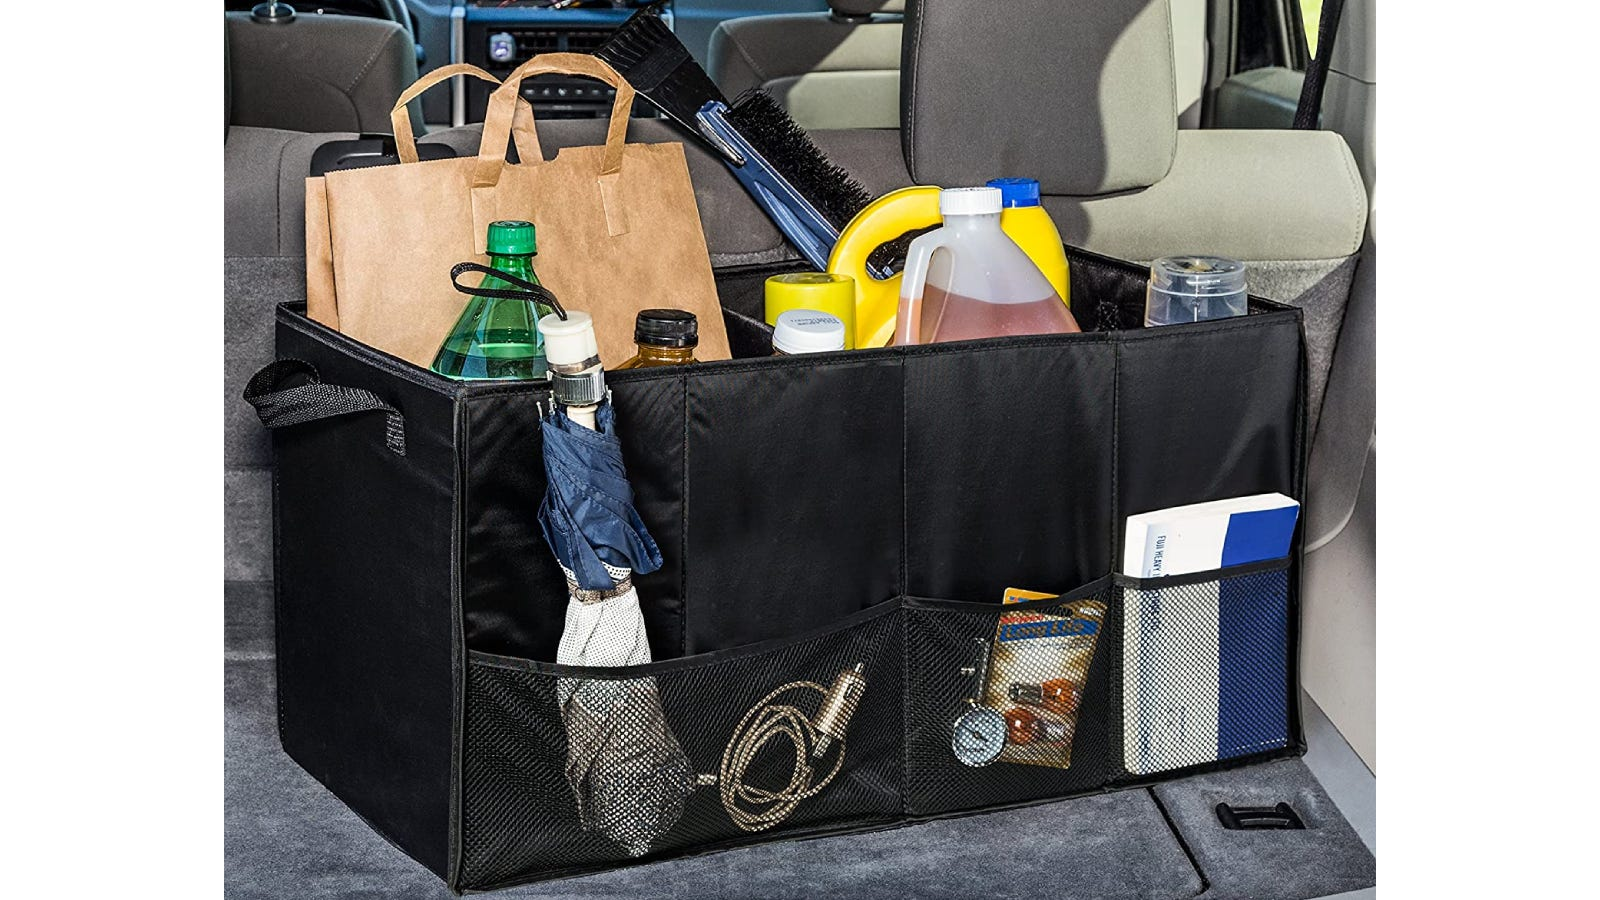 A black two-compartment trunk storage organizer filled with items and sitting in a trunk.